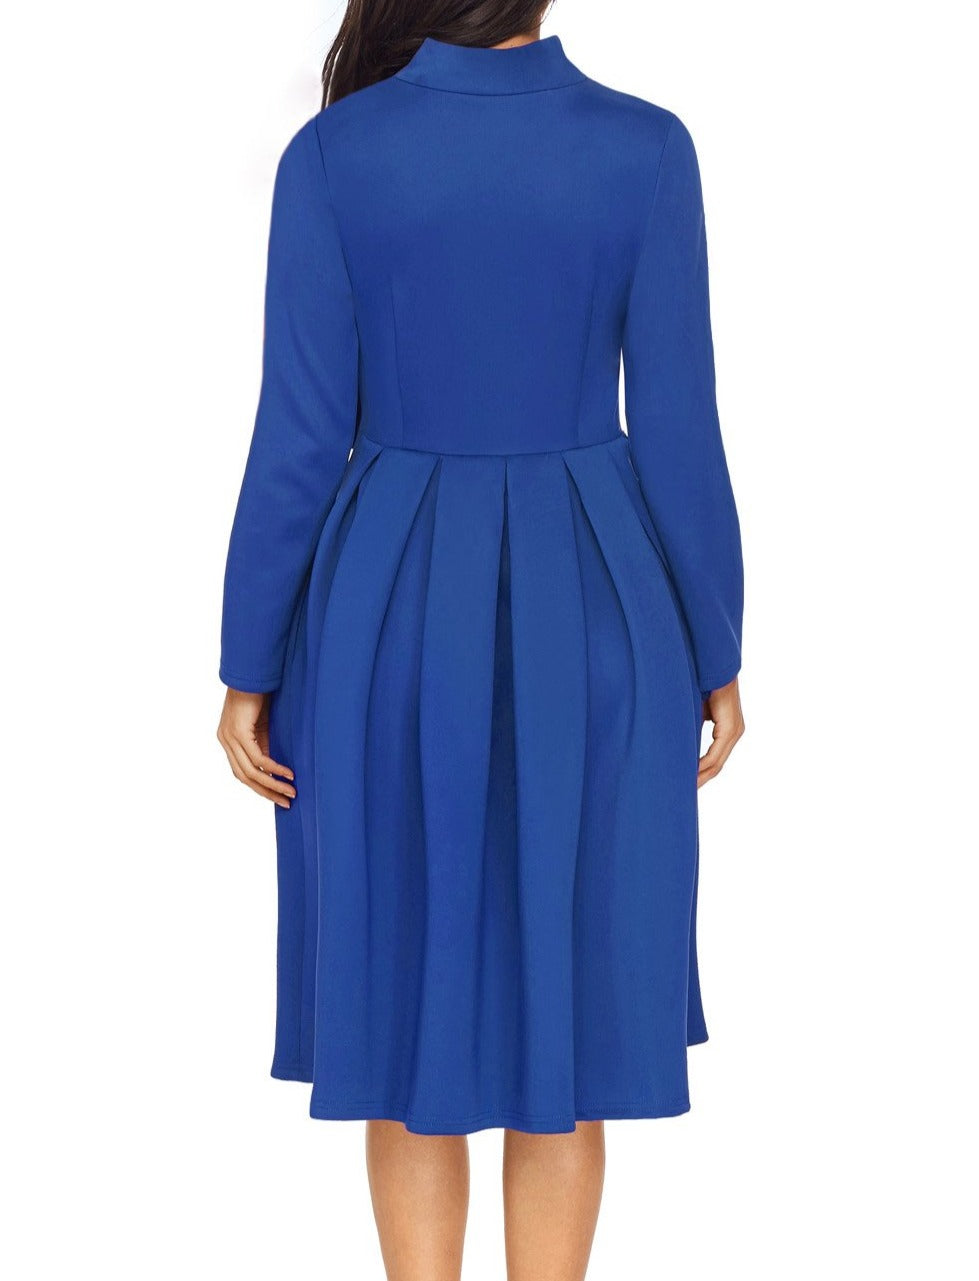 Royal Blue Pocket Style High Neck Skater Dress